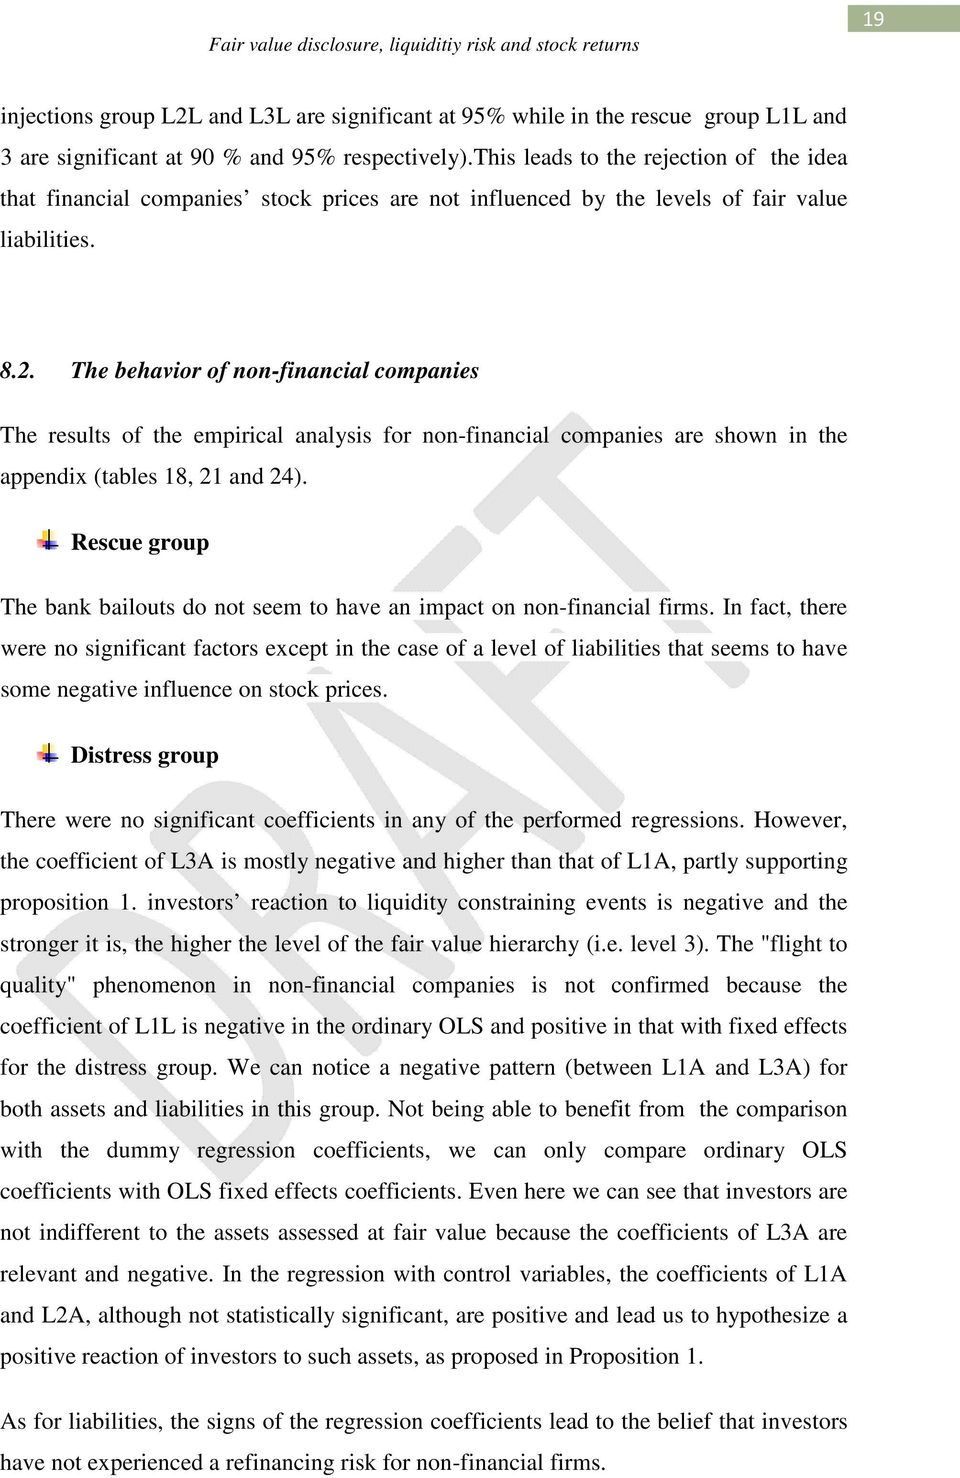 The behavior of nonfinancial companies The results of the empirical analysis for nonfinancial companies are shown in the appendix (tables 18, 21 and 24).